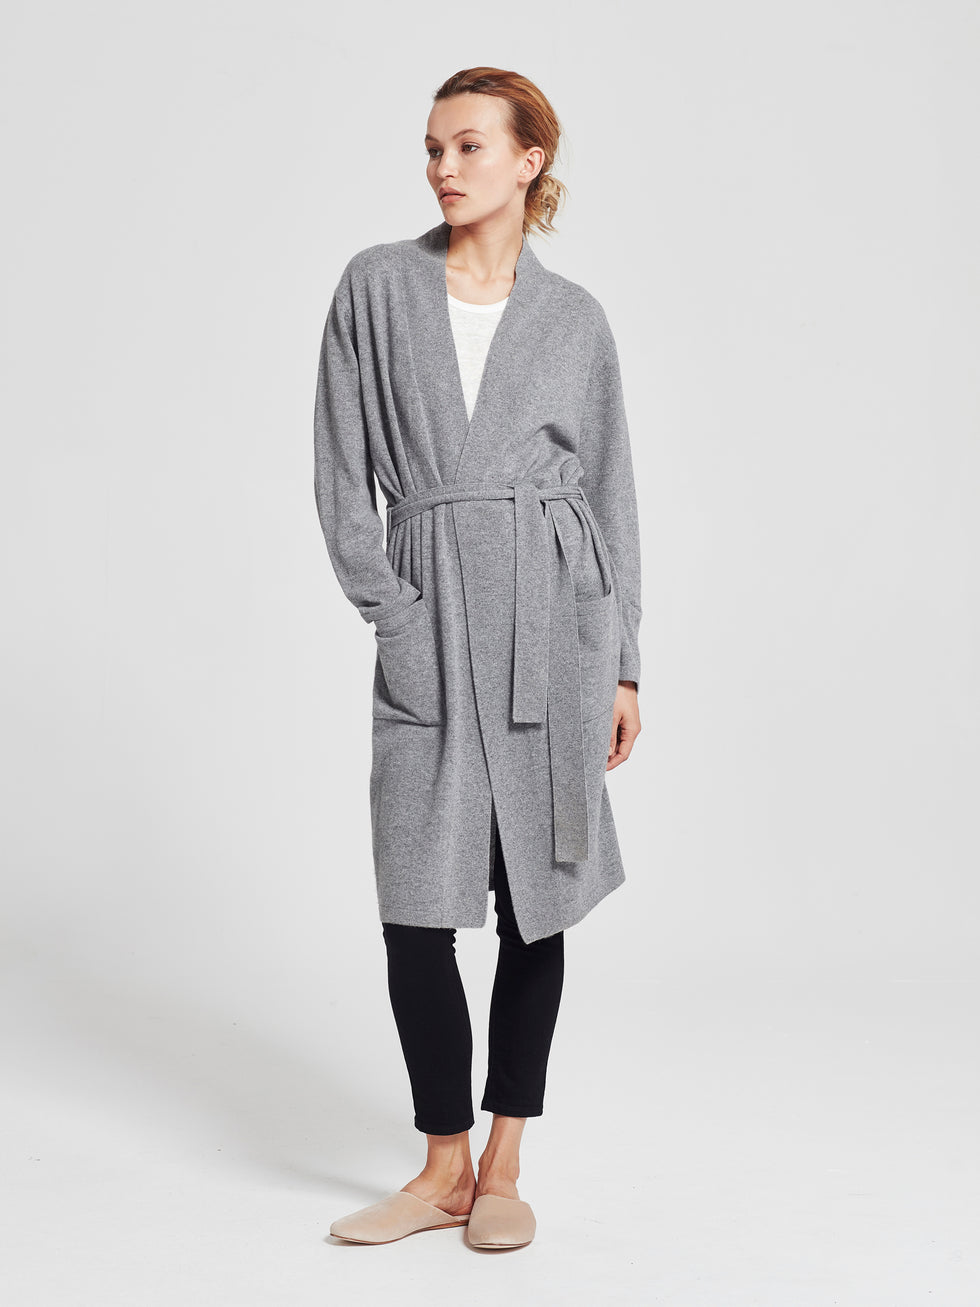 JH Lounge Luxe Robe (cashmere)